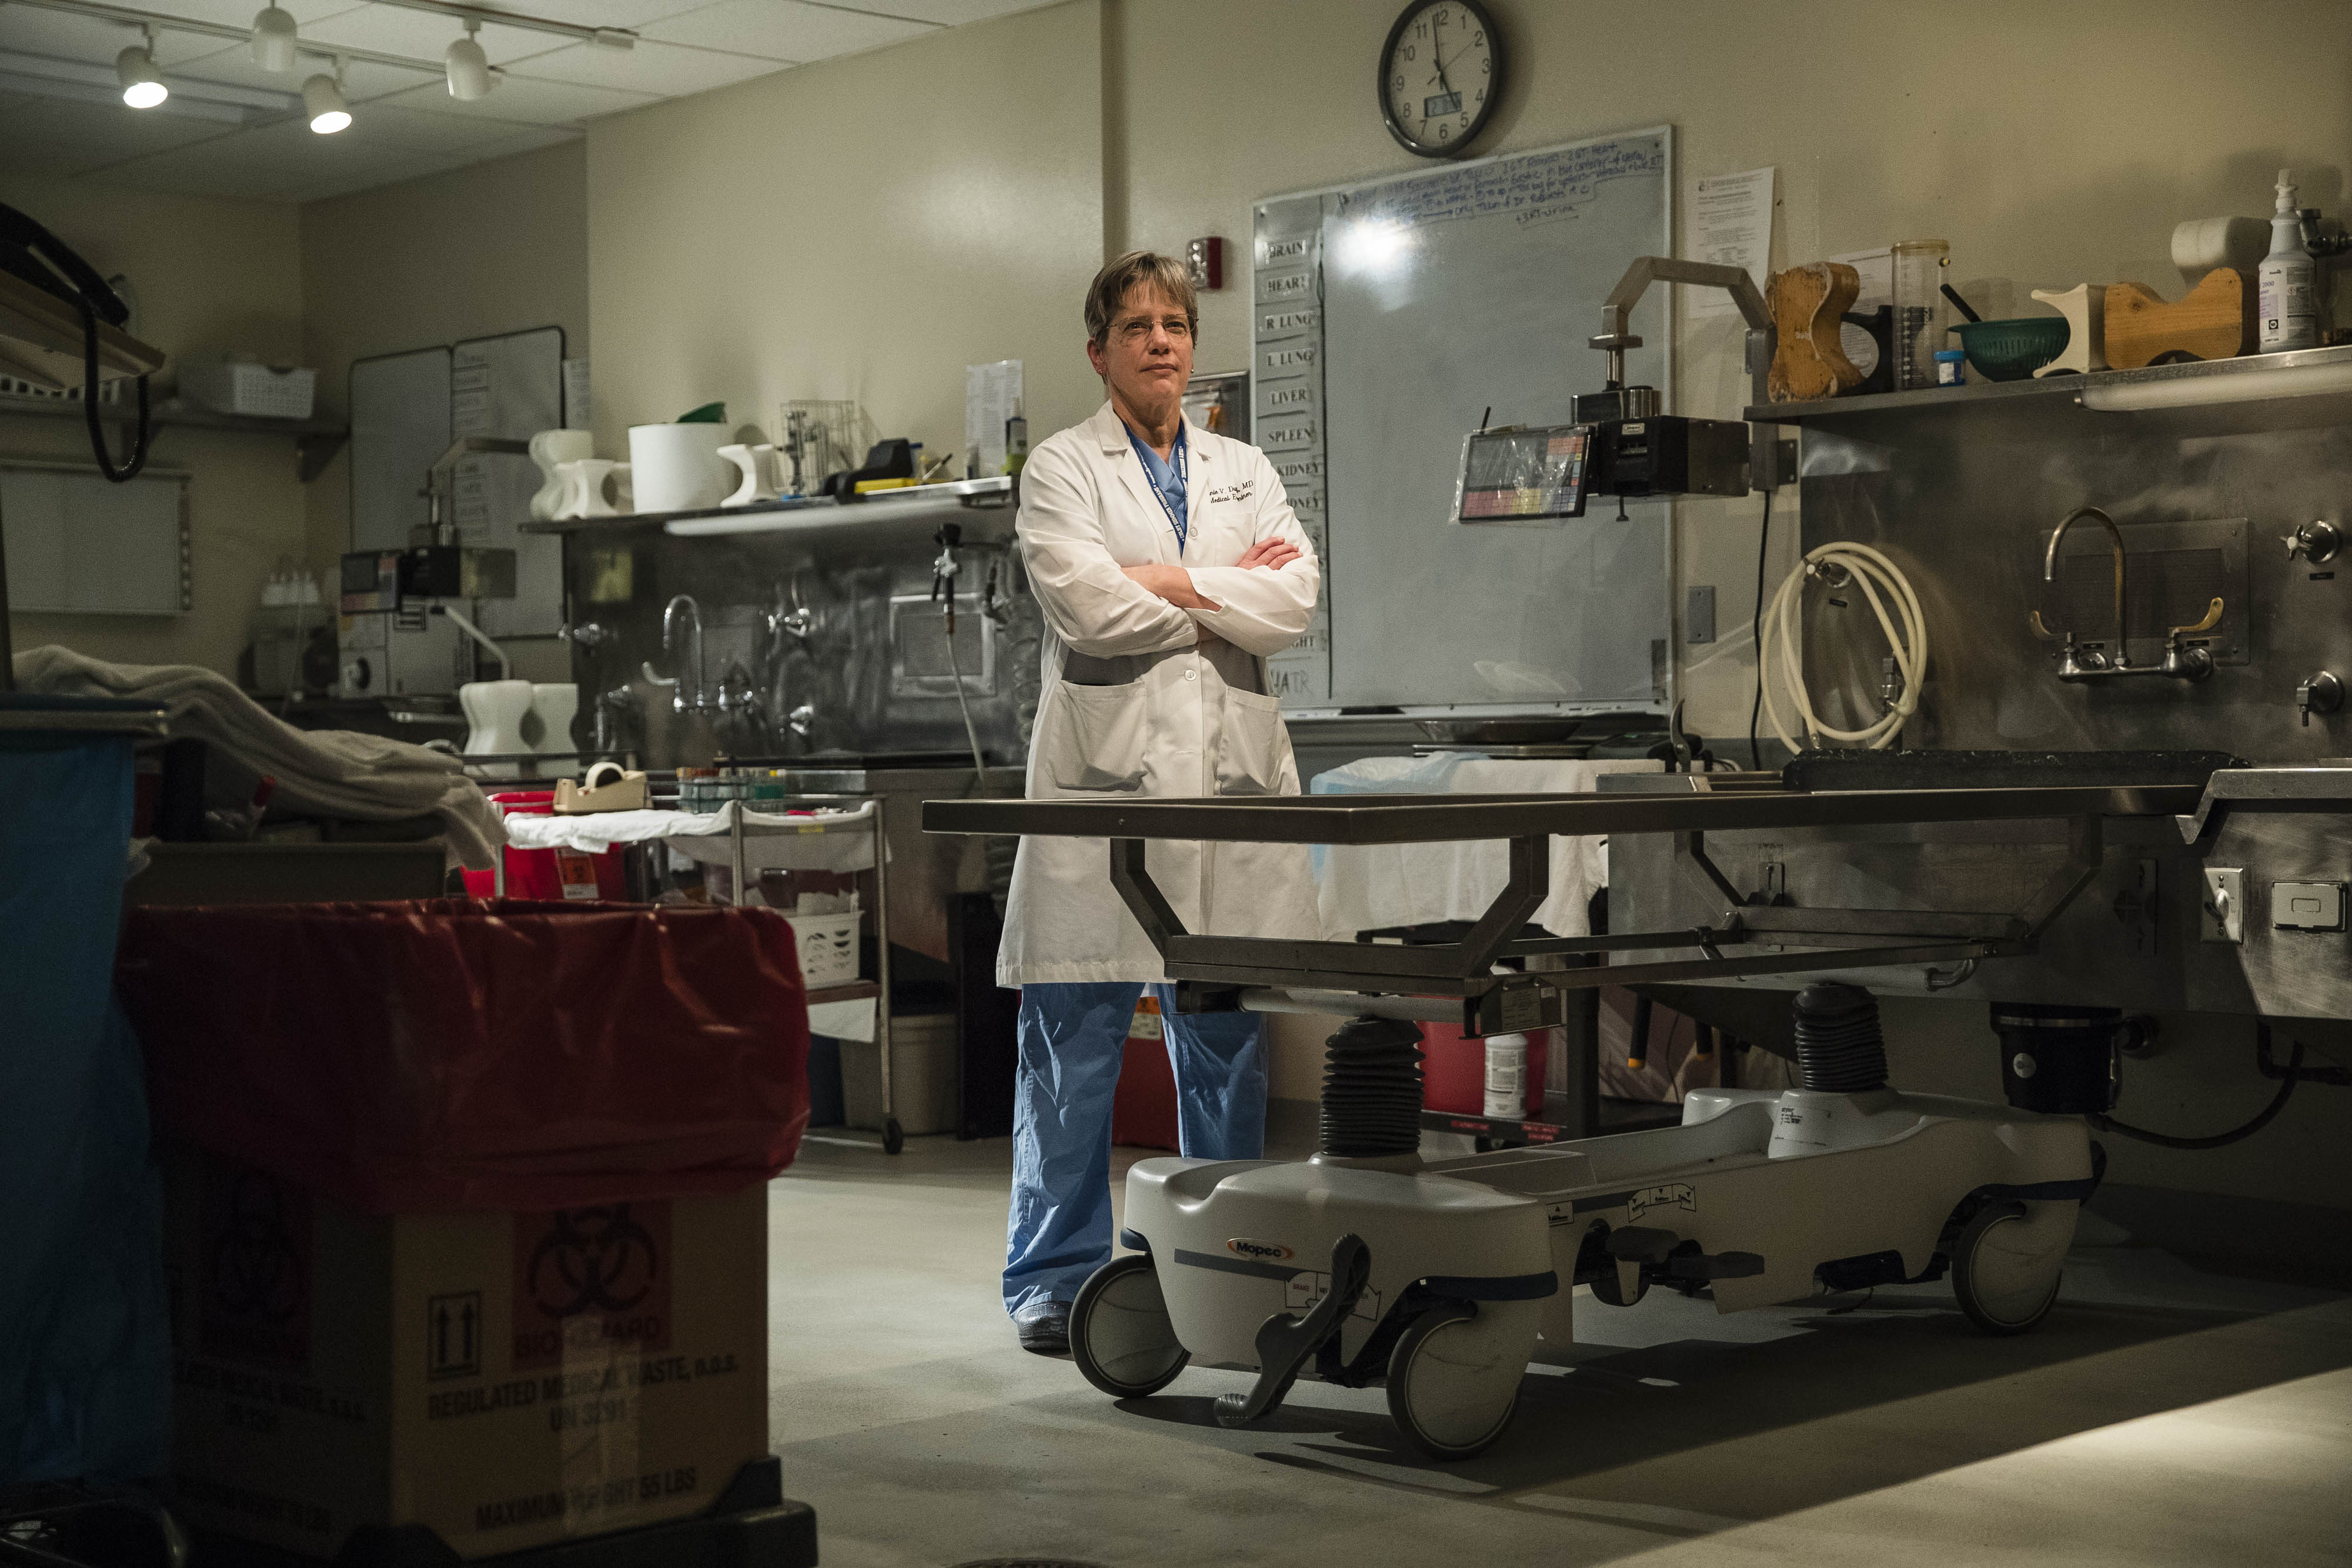 Opioid Crisis Weighs On New Hampshire S Chief Medical Examiner The Boston Globe